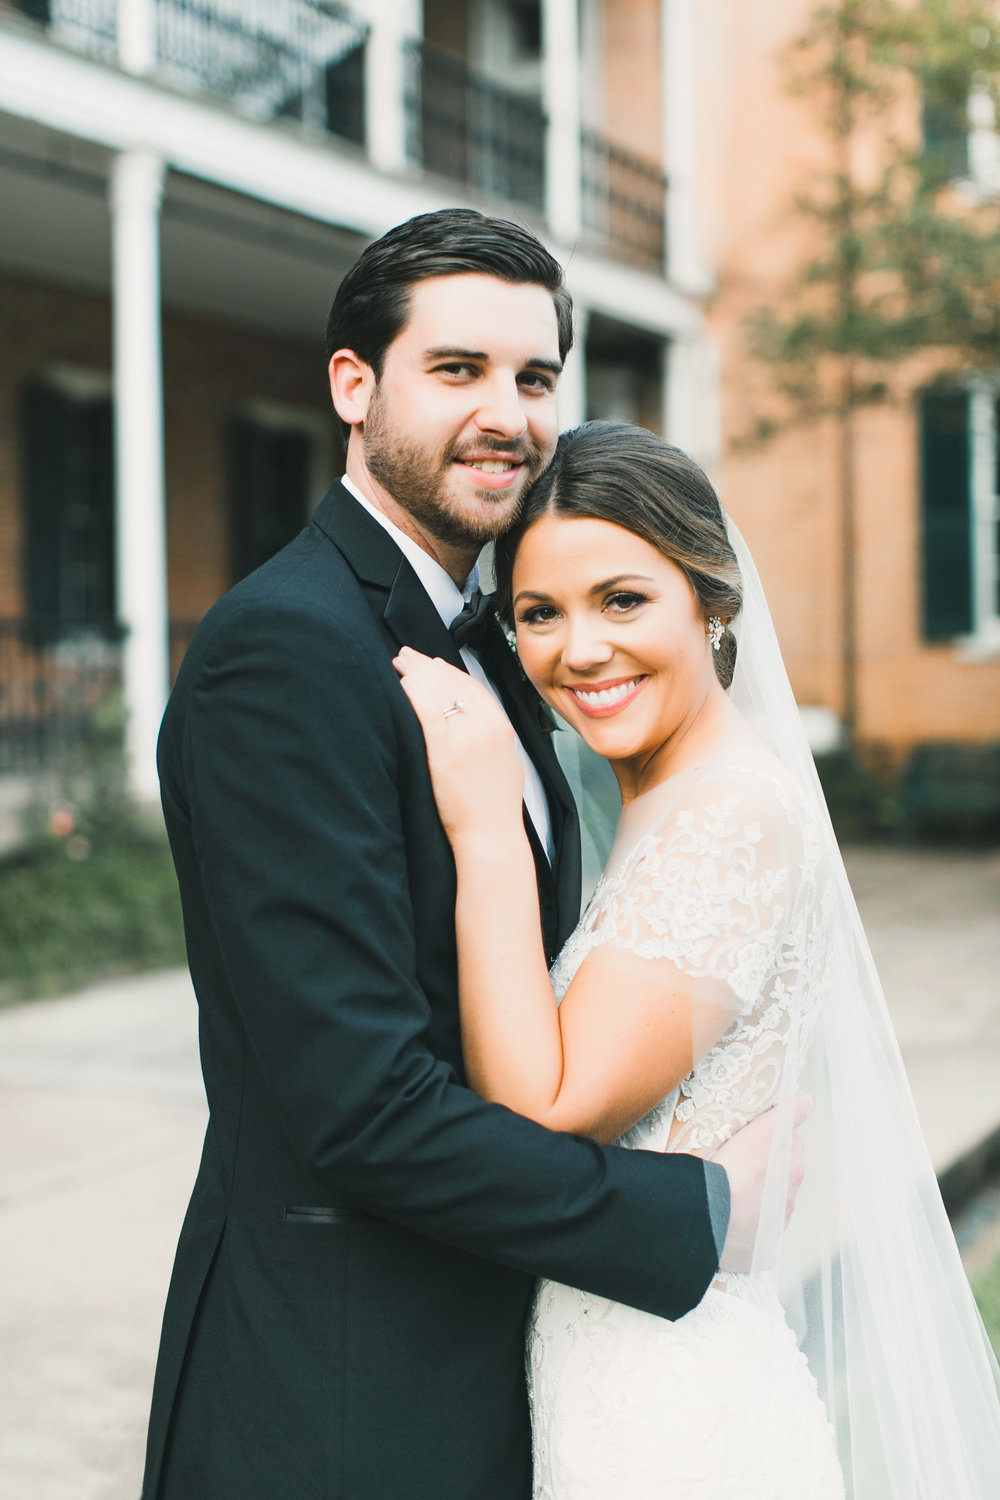 Daigle_Lafayette_Louisiana_Wedding_Planner-0495.jpg